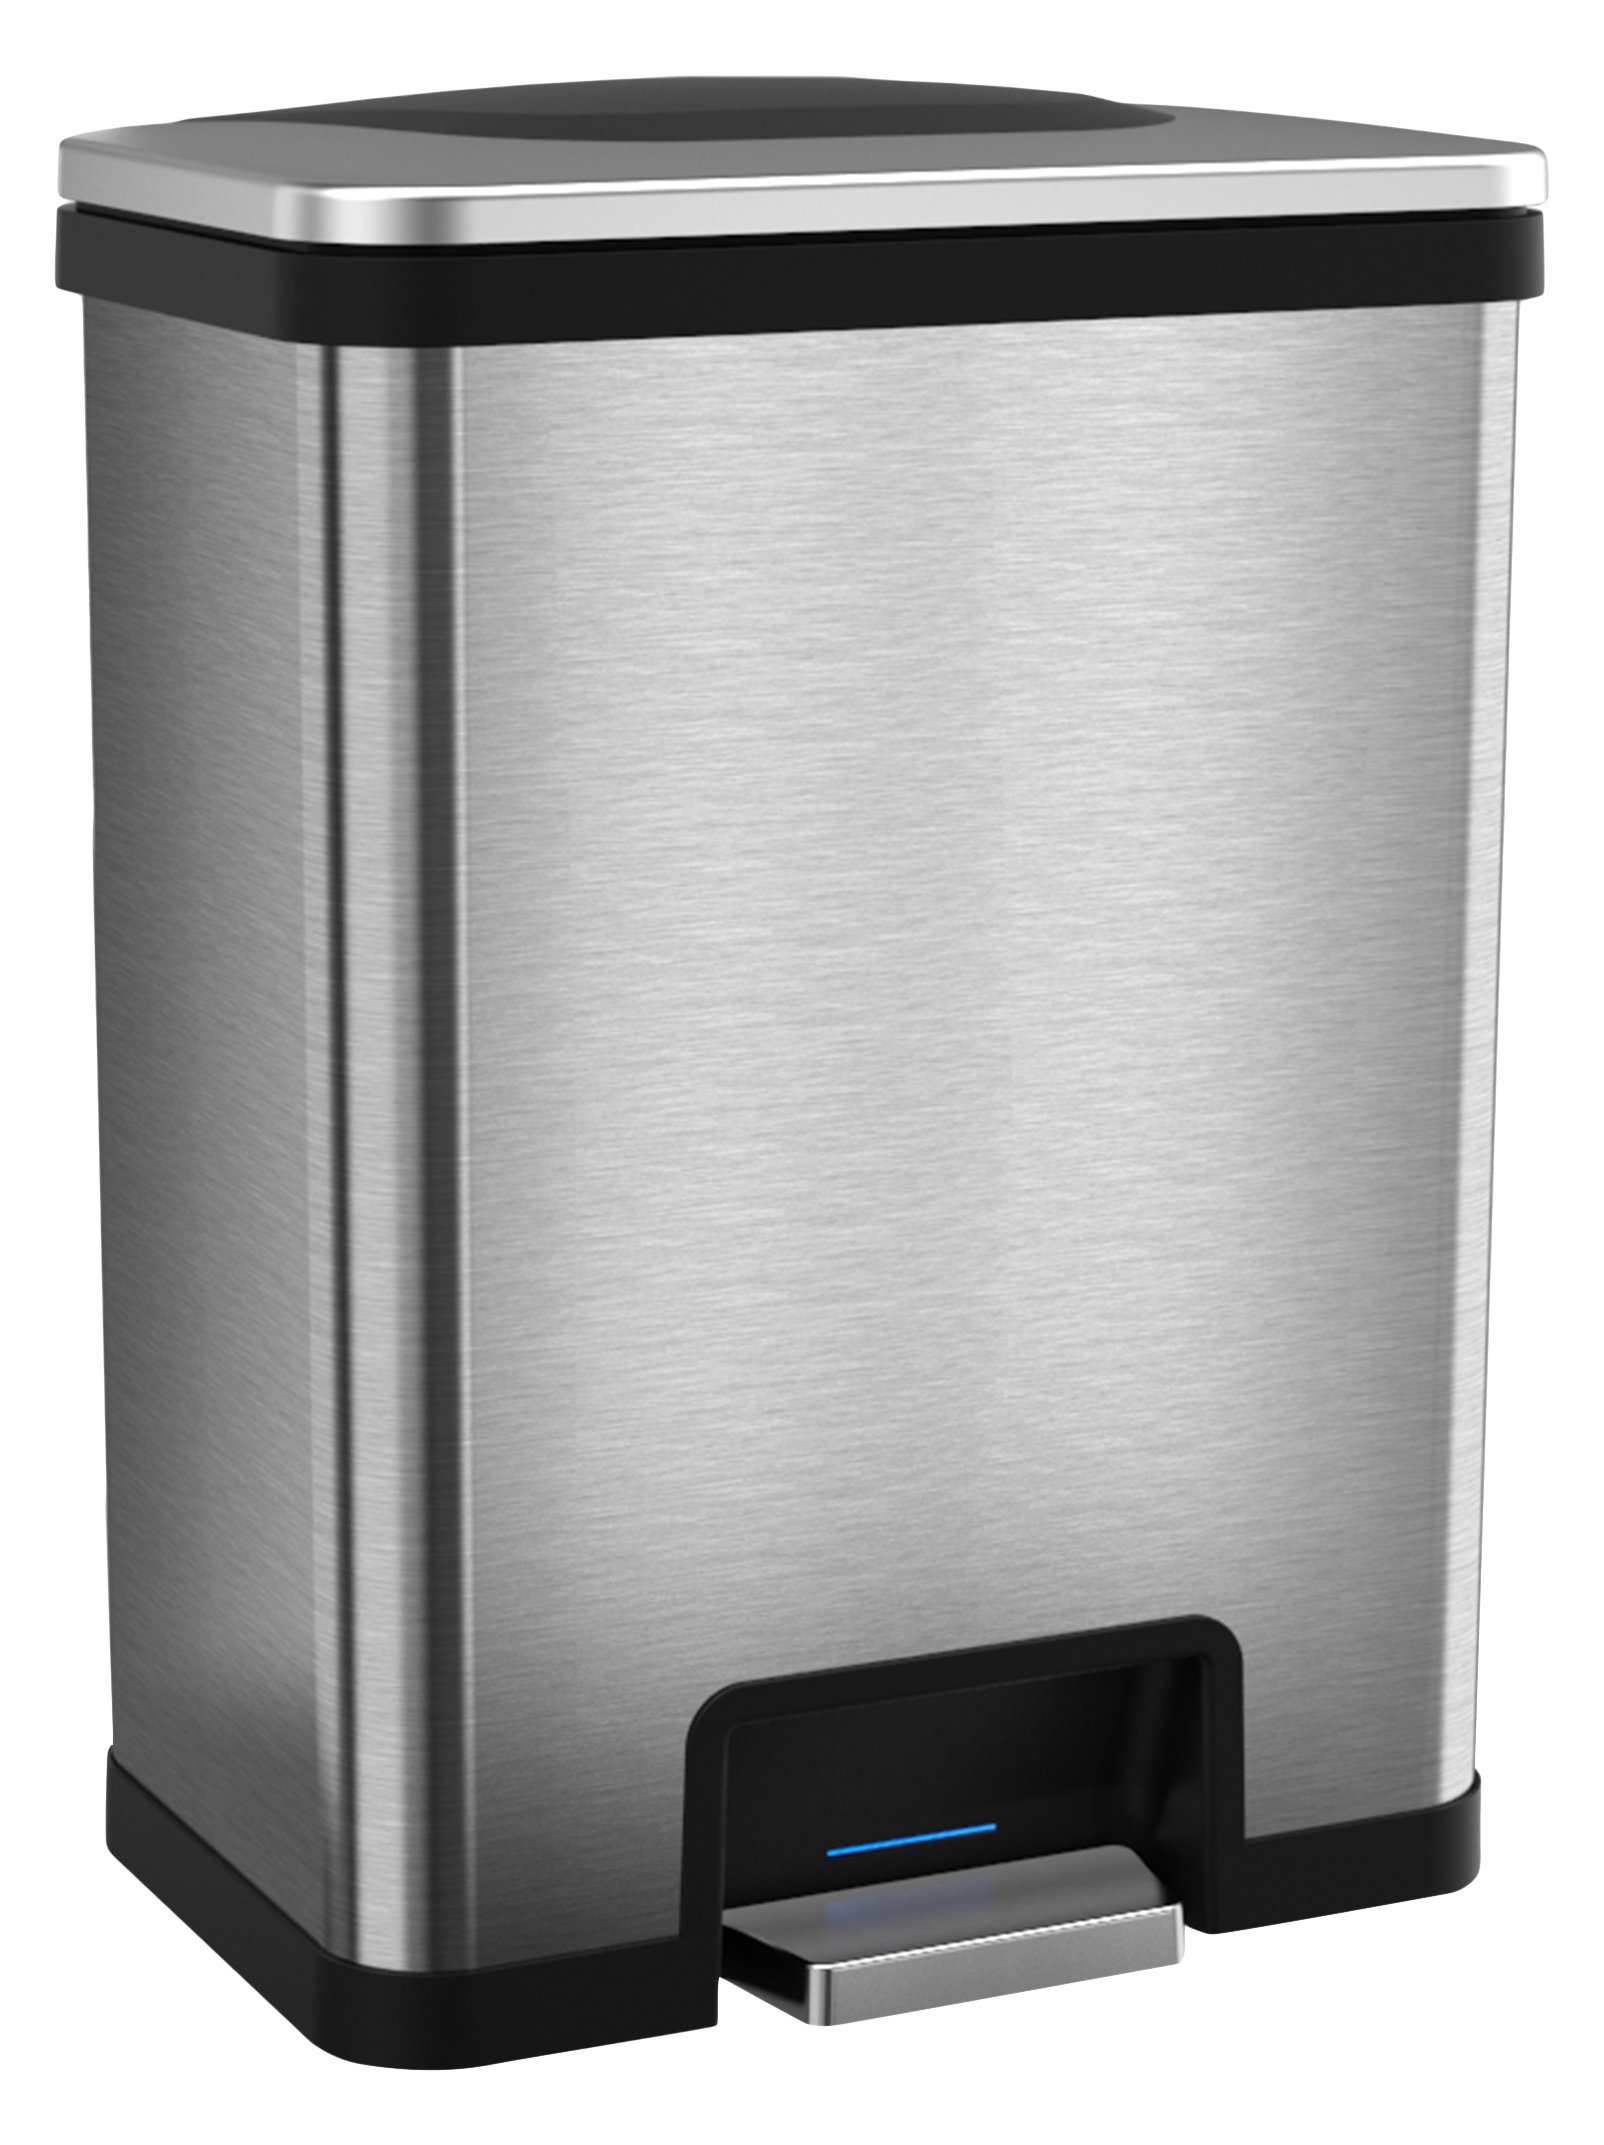 Halo 13 Gallon Automatic STEP Trash Can, Sensor Activated Stainless Steel Kitchen Trash Can with Odor Control System (Black)